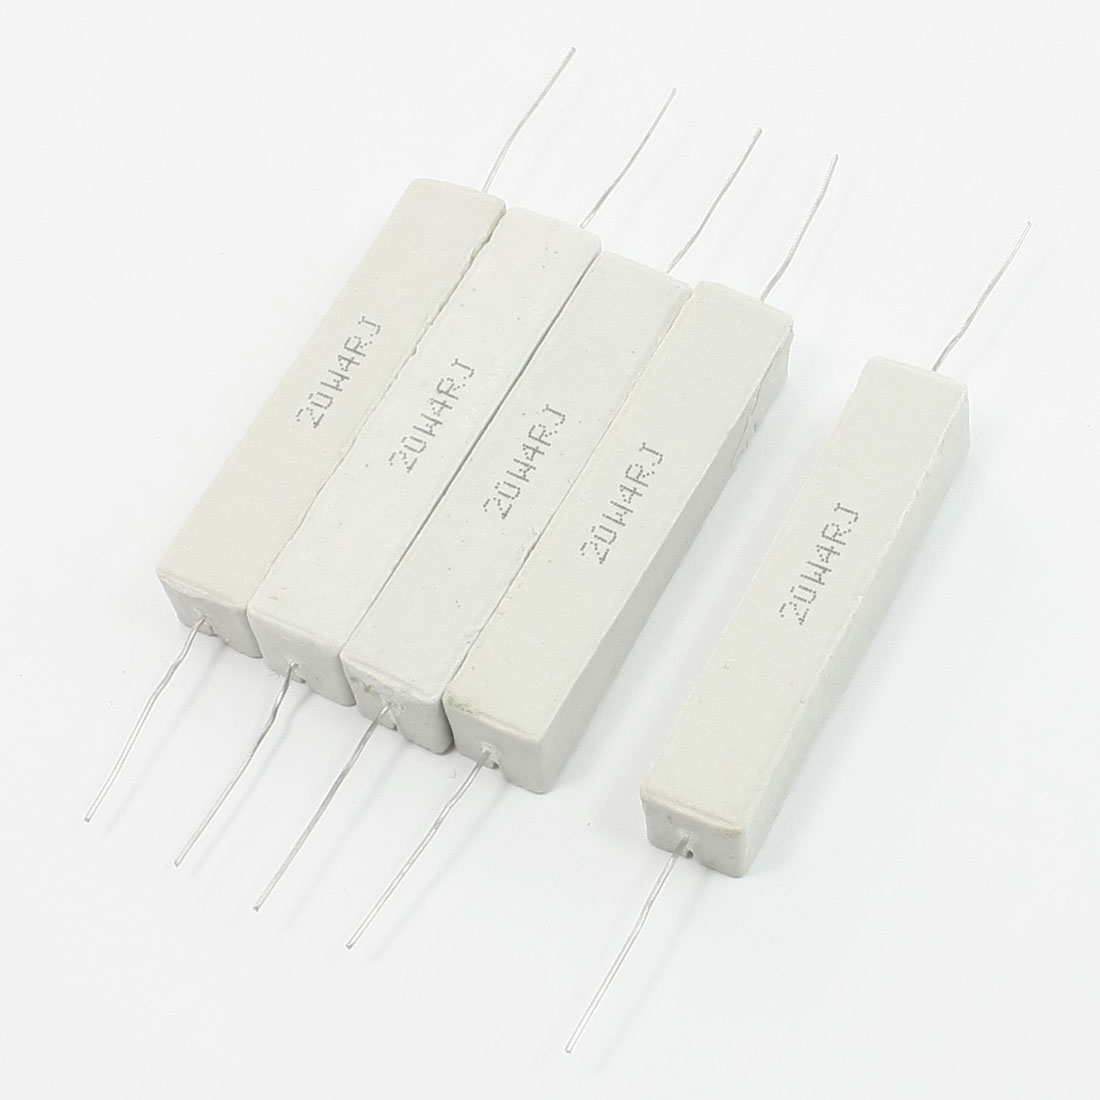 5 Pieces Radial Lead Fixed Ceramic Cement Resistor White 20W 4 Ohm